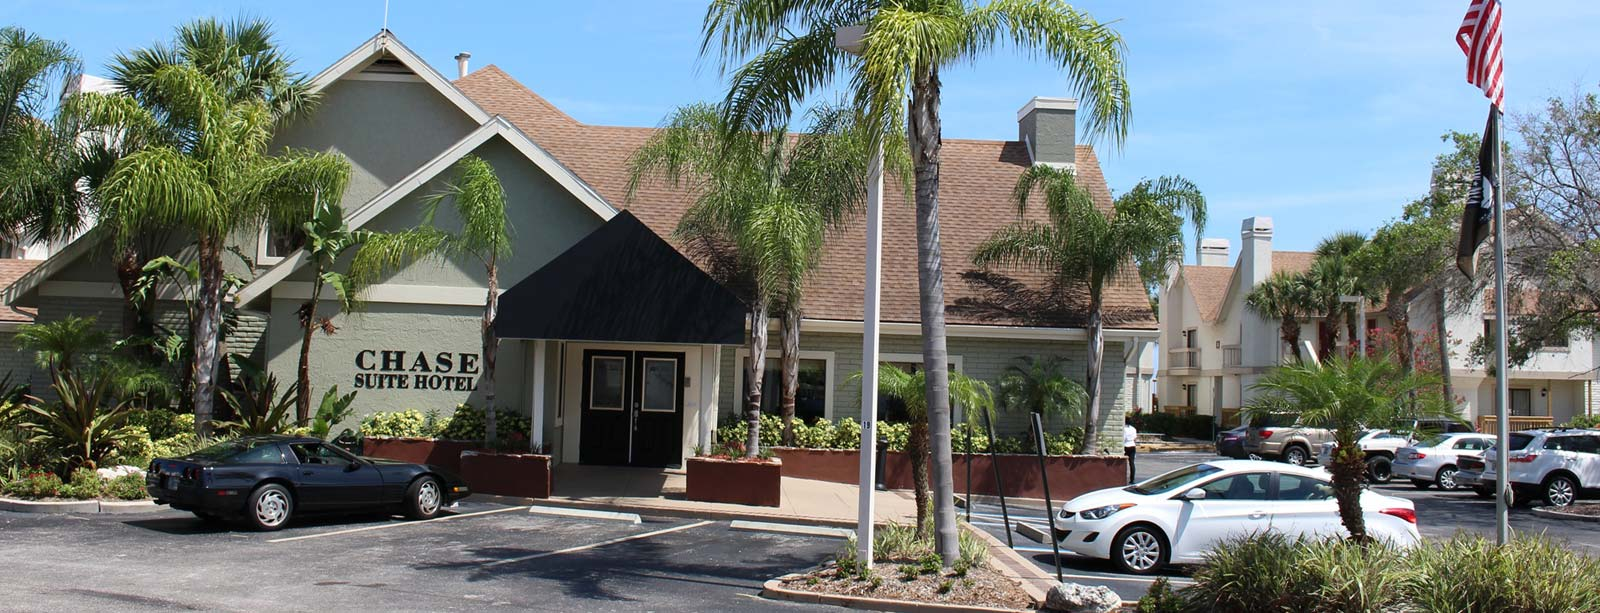 convenient hotel for extended stay in tampa chase suite